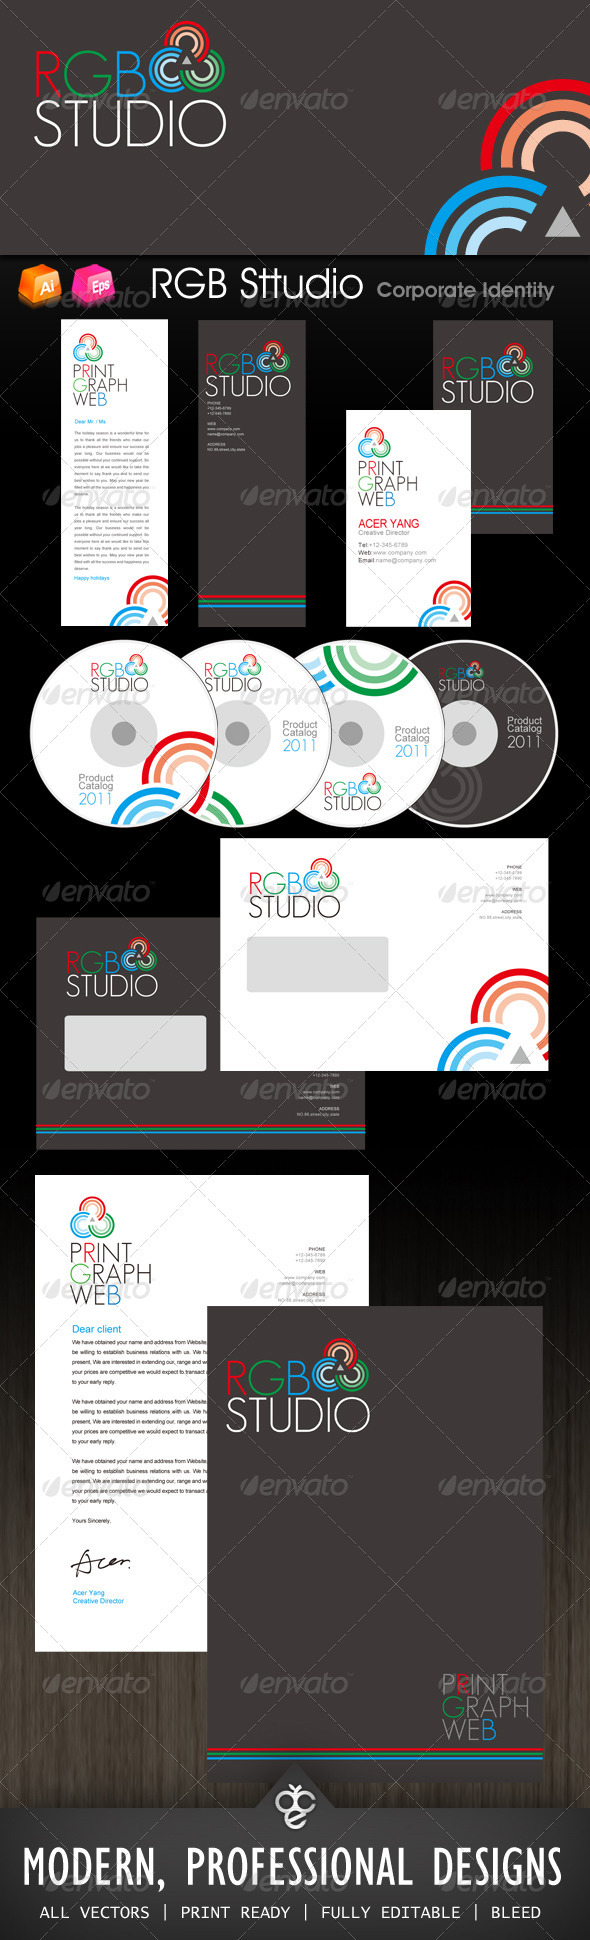 RGB Studio Corporate Identity - Stationery Print Templates